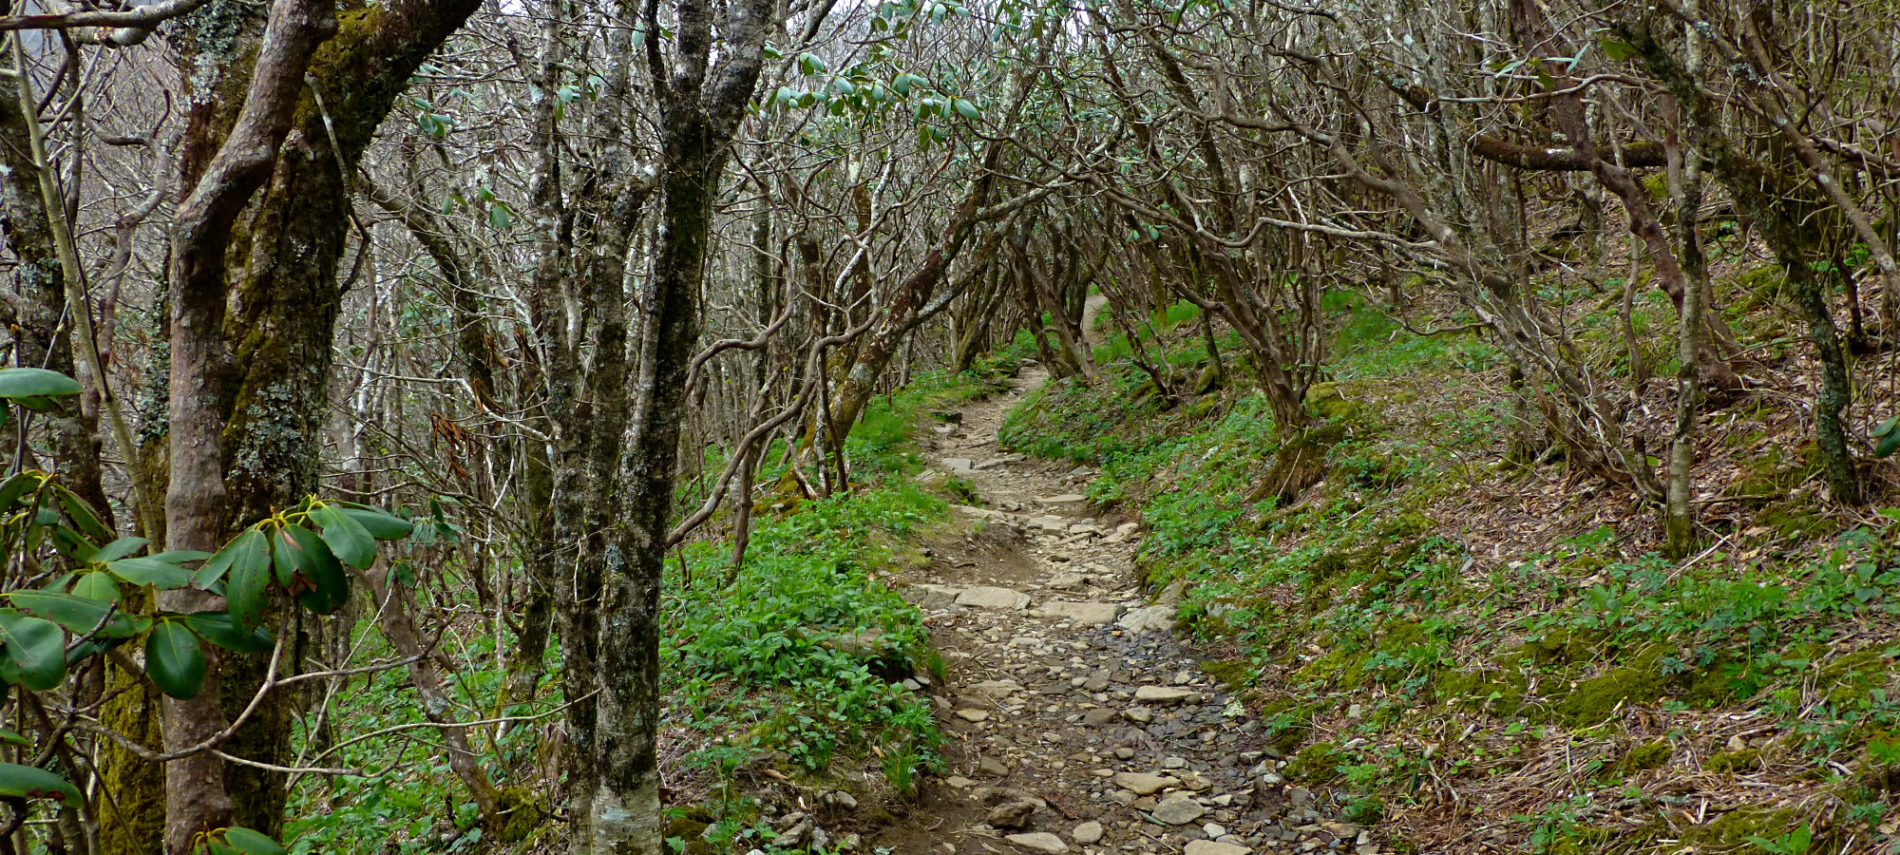 Spring Hike: Craggy Gardens on the Blue Ridge Parkway